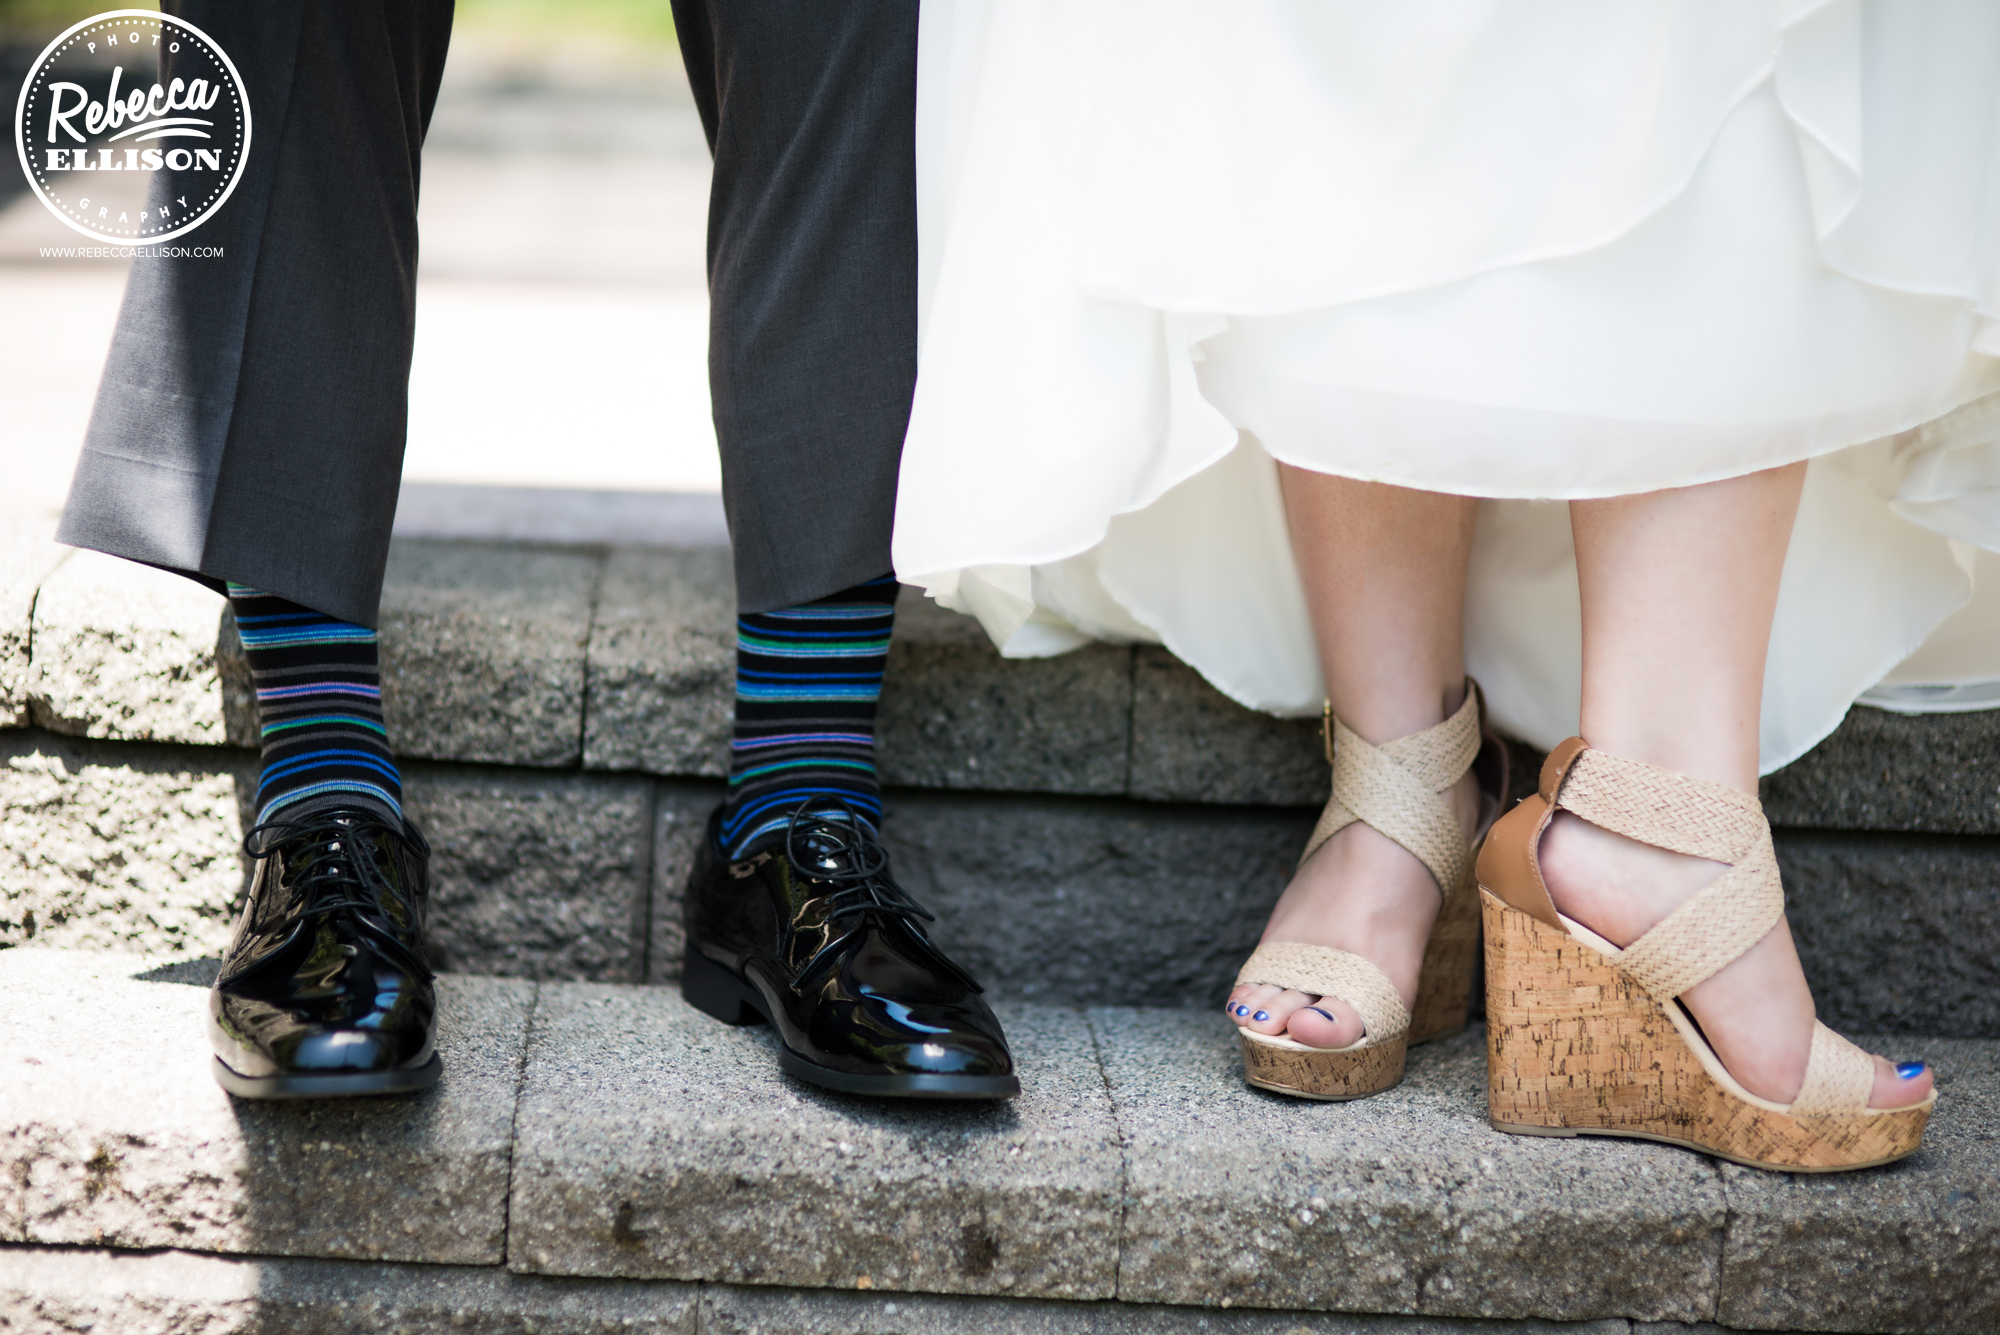 Wedding portraits featuring feet wearing tan cork wedge sandals and striped socks